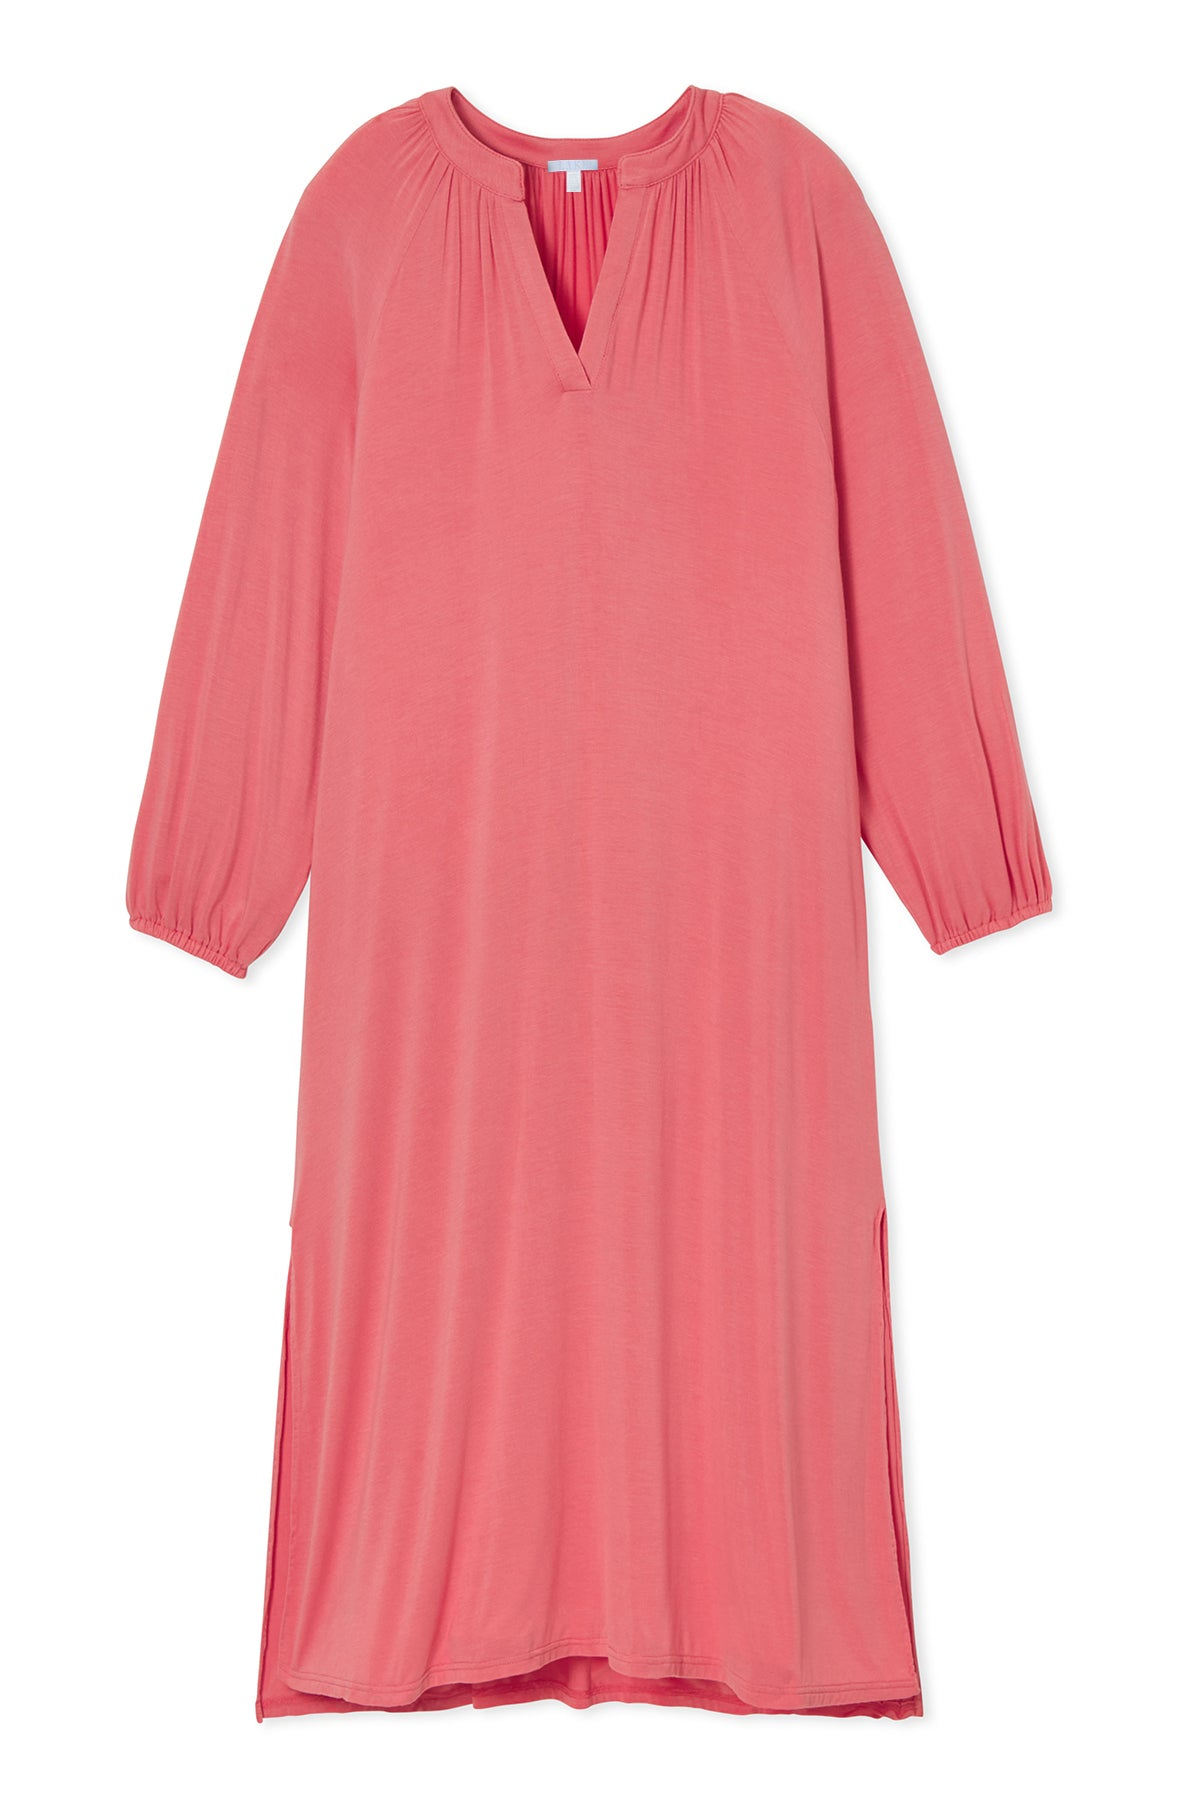 Blouson Nightgown in Persimmon